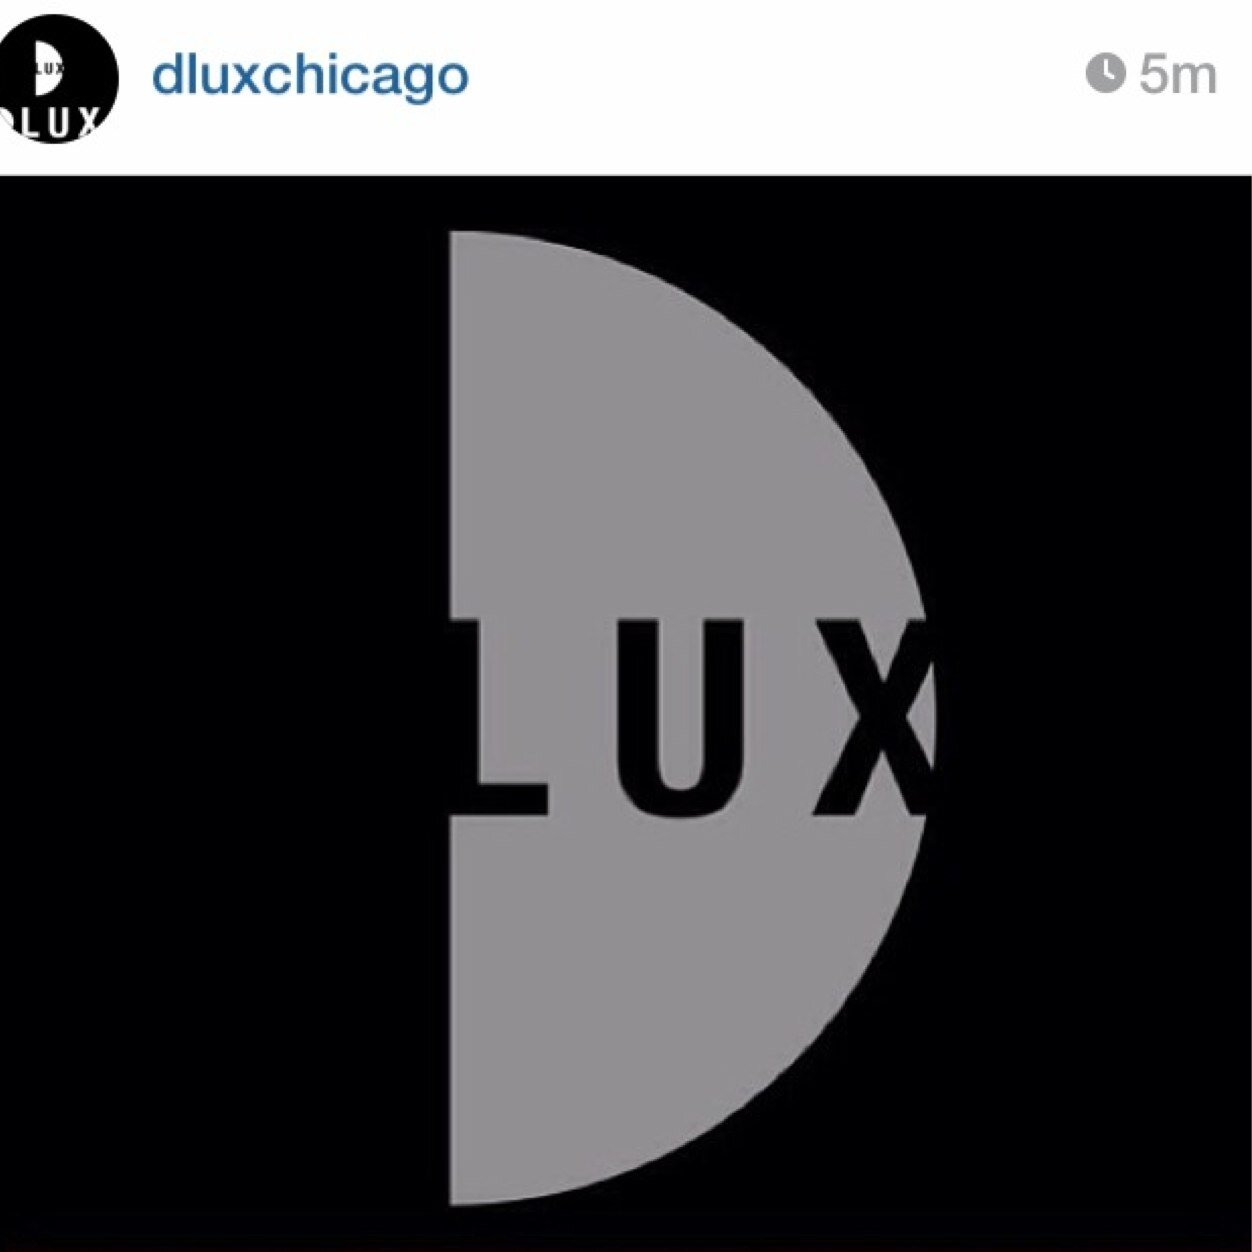 DLUX Chicago Social Profile